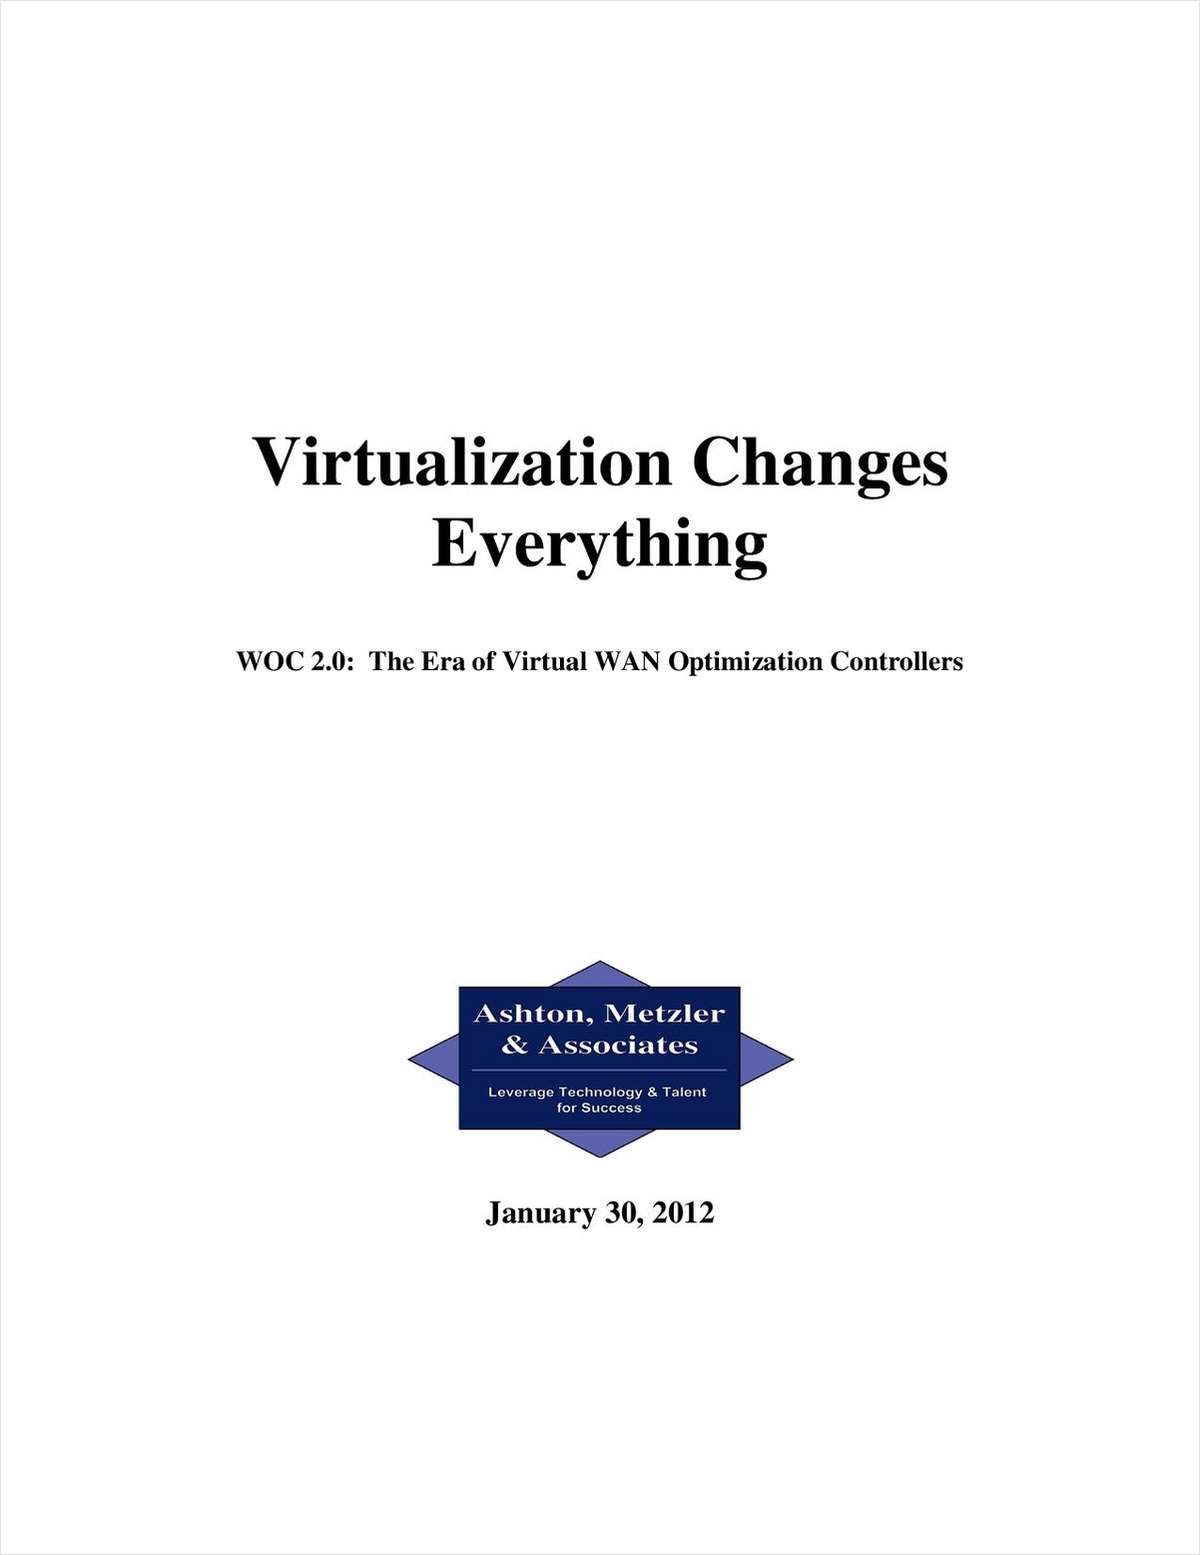 Virtualization Changes Everything:  Enter the vWOC